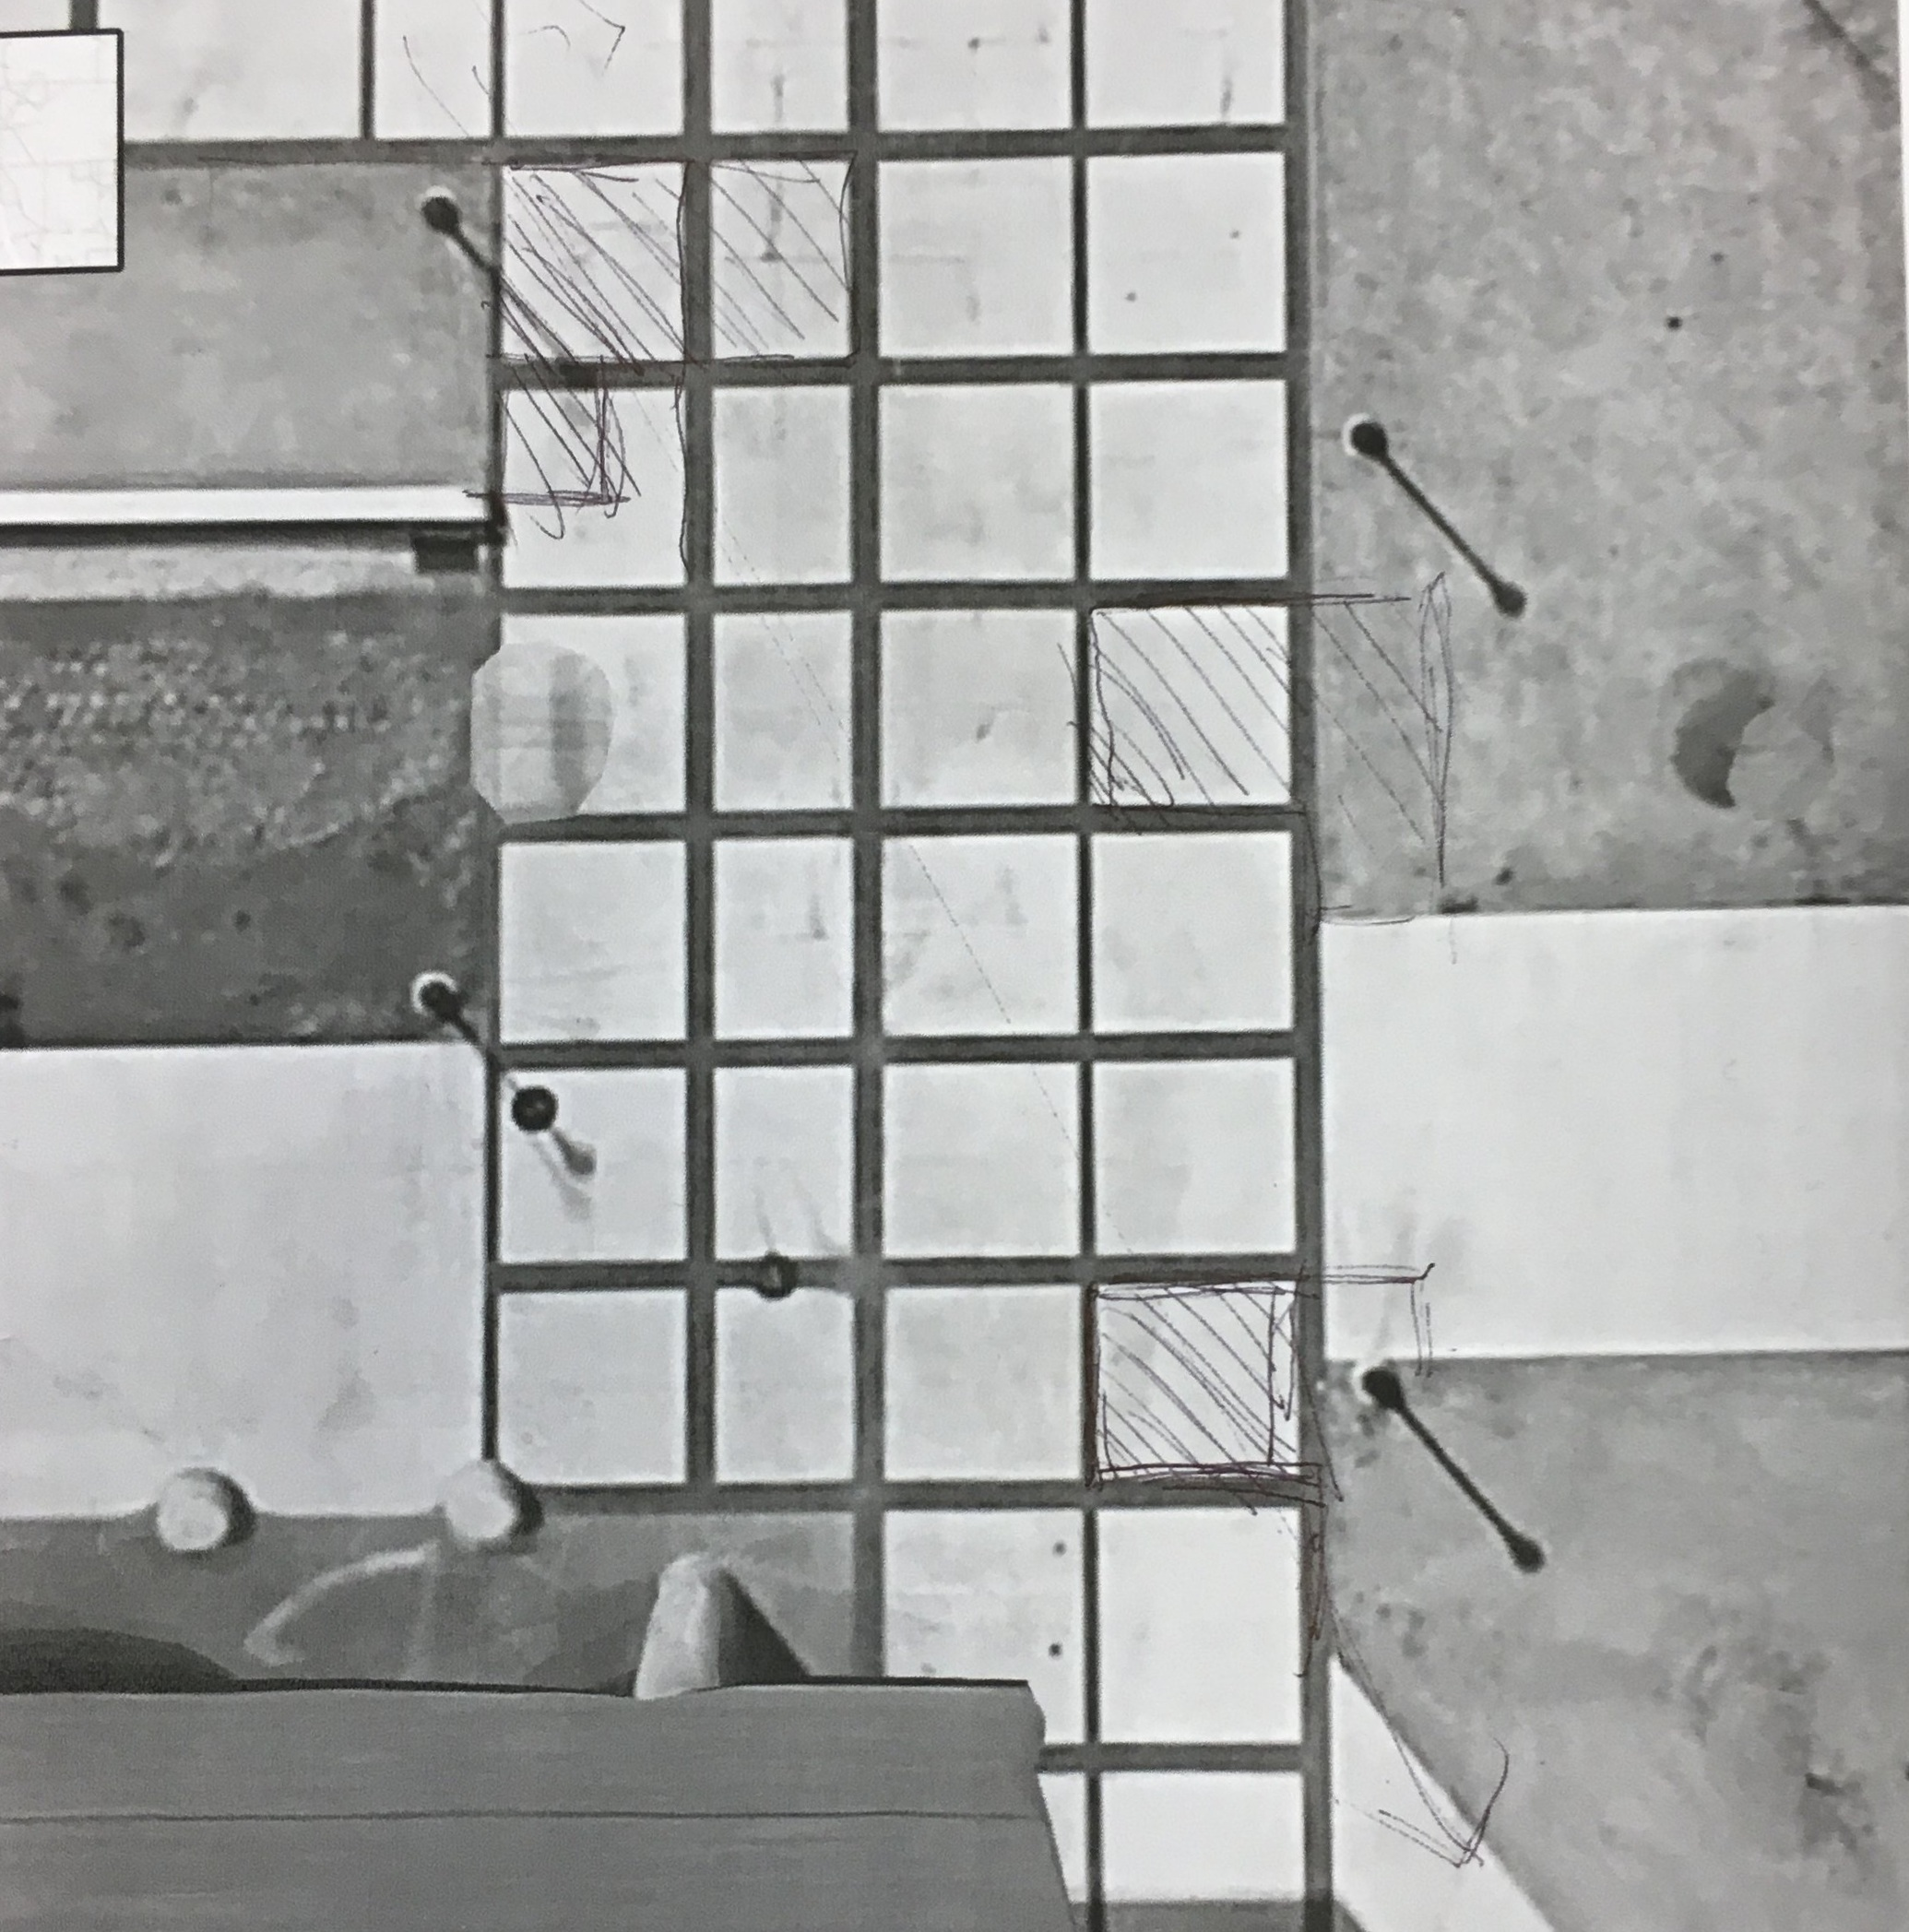 A drawing by one of the members of the committee, the shaded areas representing blocks of concrete that could be replaced with dirt or cobblestones to guide bikes in a certain manner.